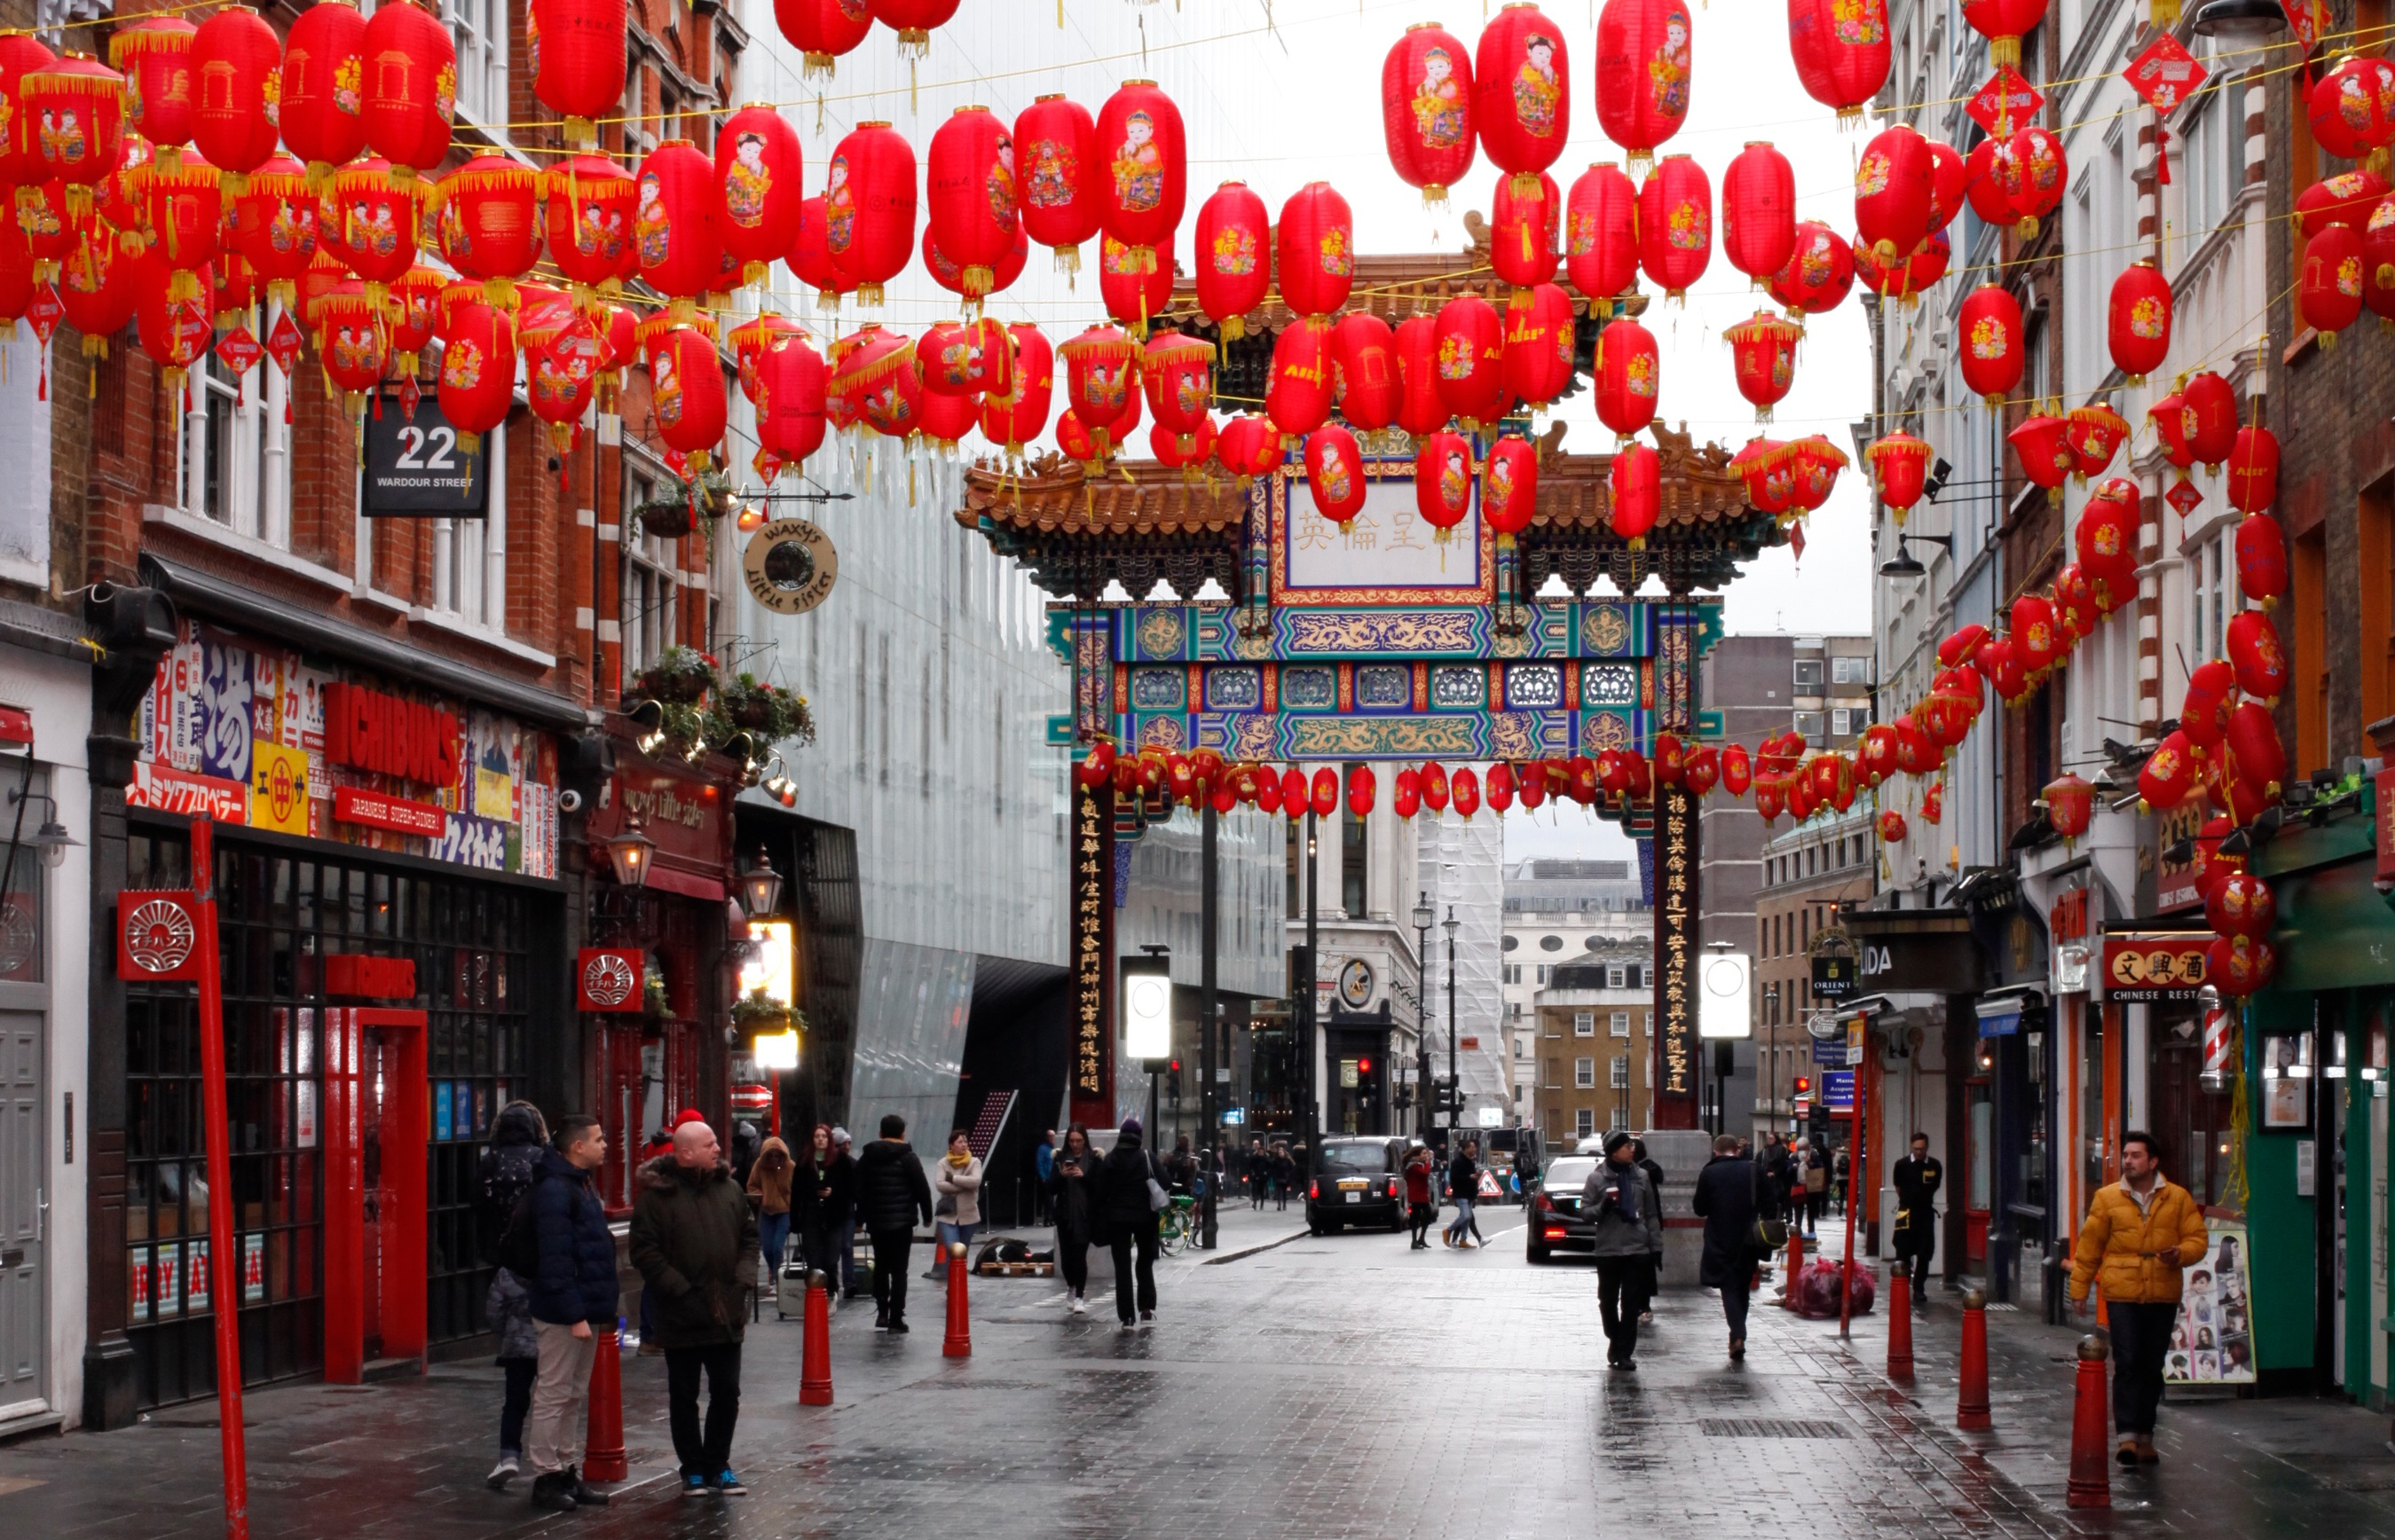 One of the main streets in London's Chinatown last month. Coronavirus (COVID-19) has had an adverse affect on businesses in the area with some restaurants reporting a 50 percent drop in custom; while others have reportedly closed.